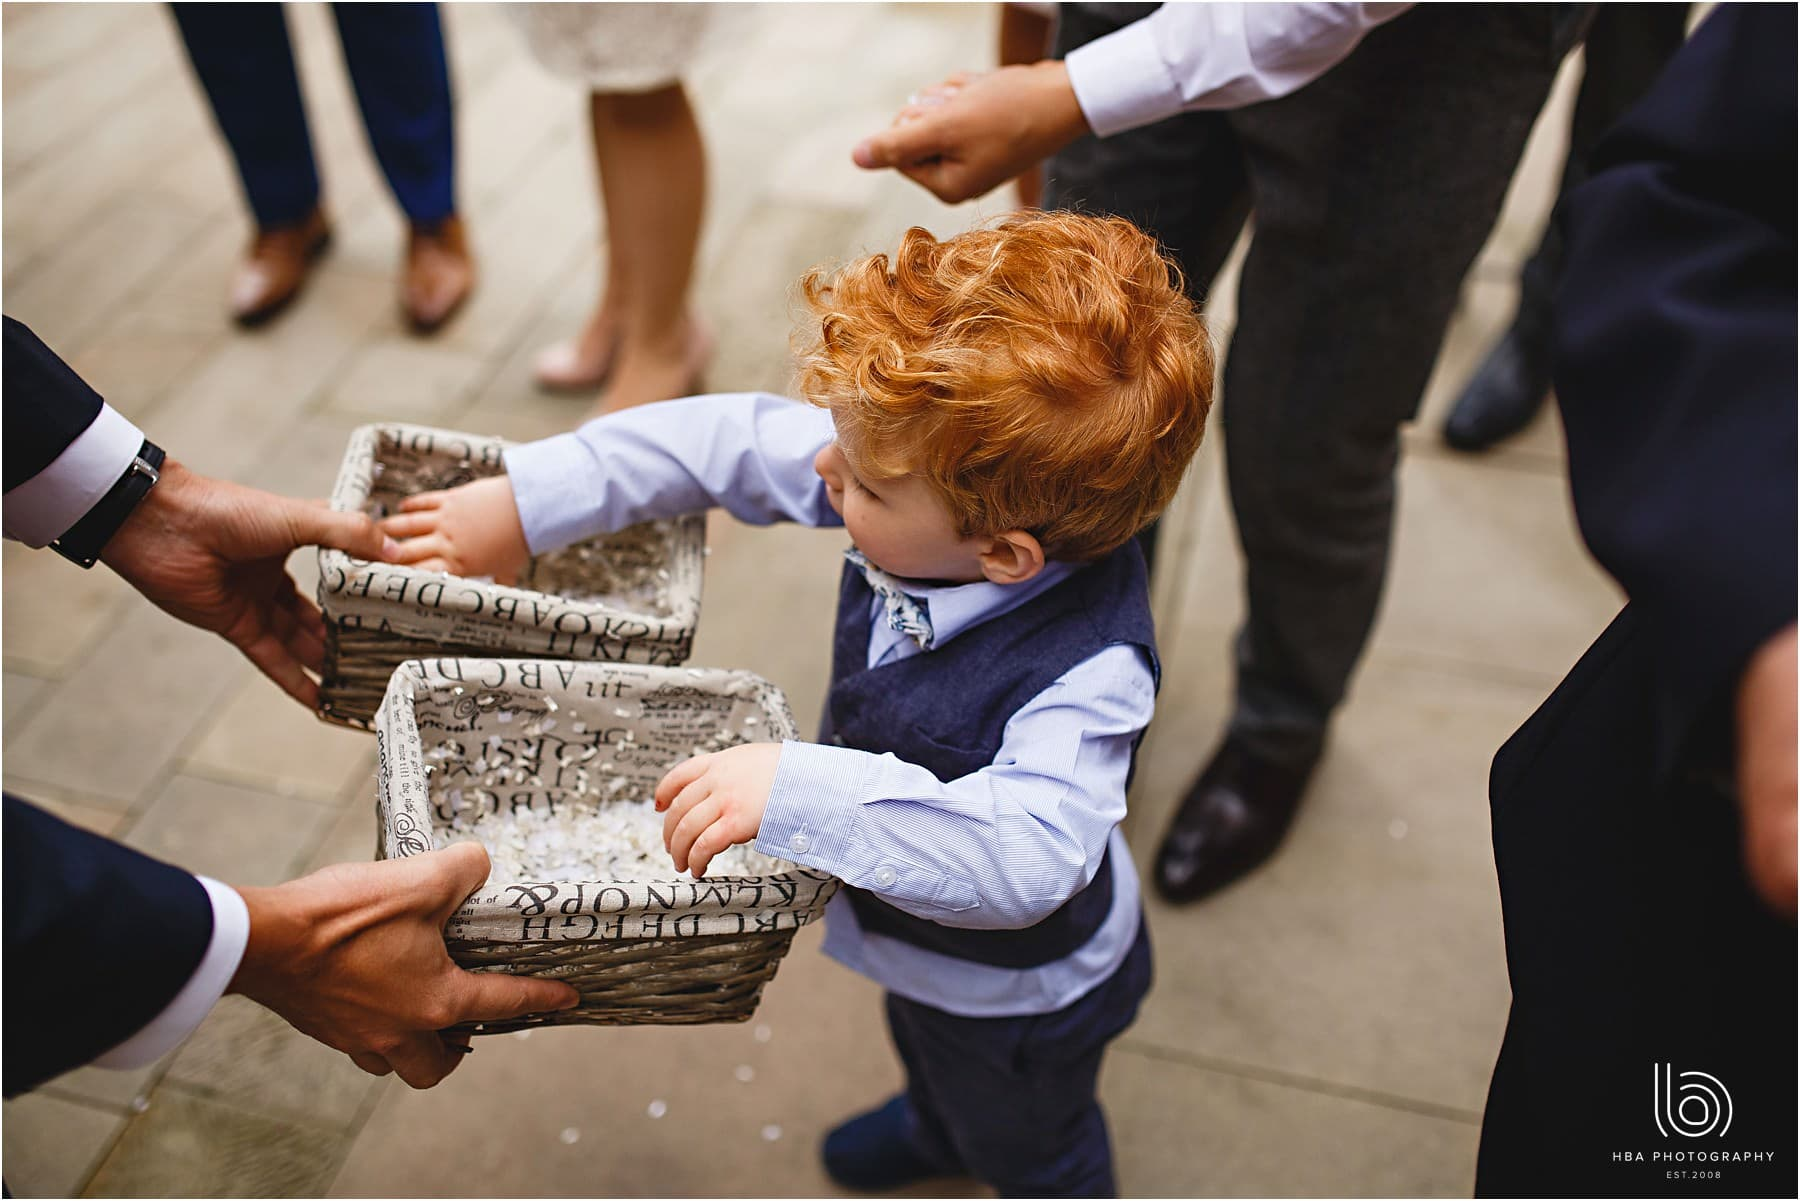 a little boy grabbing confetti